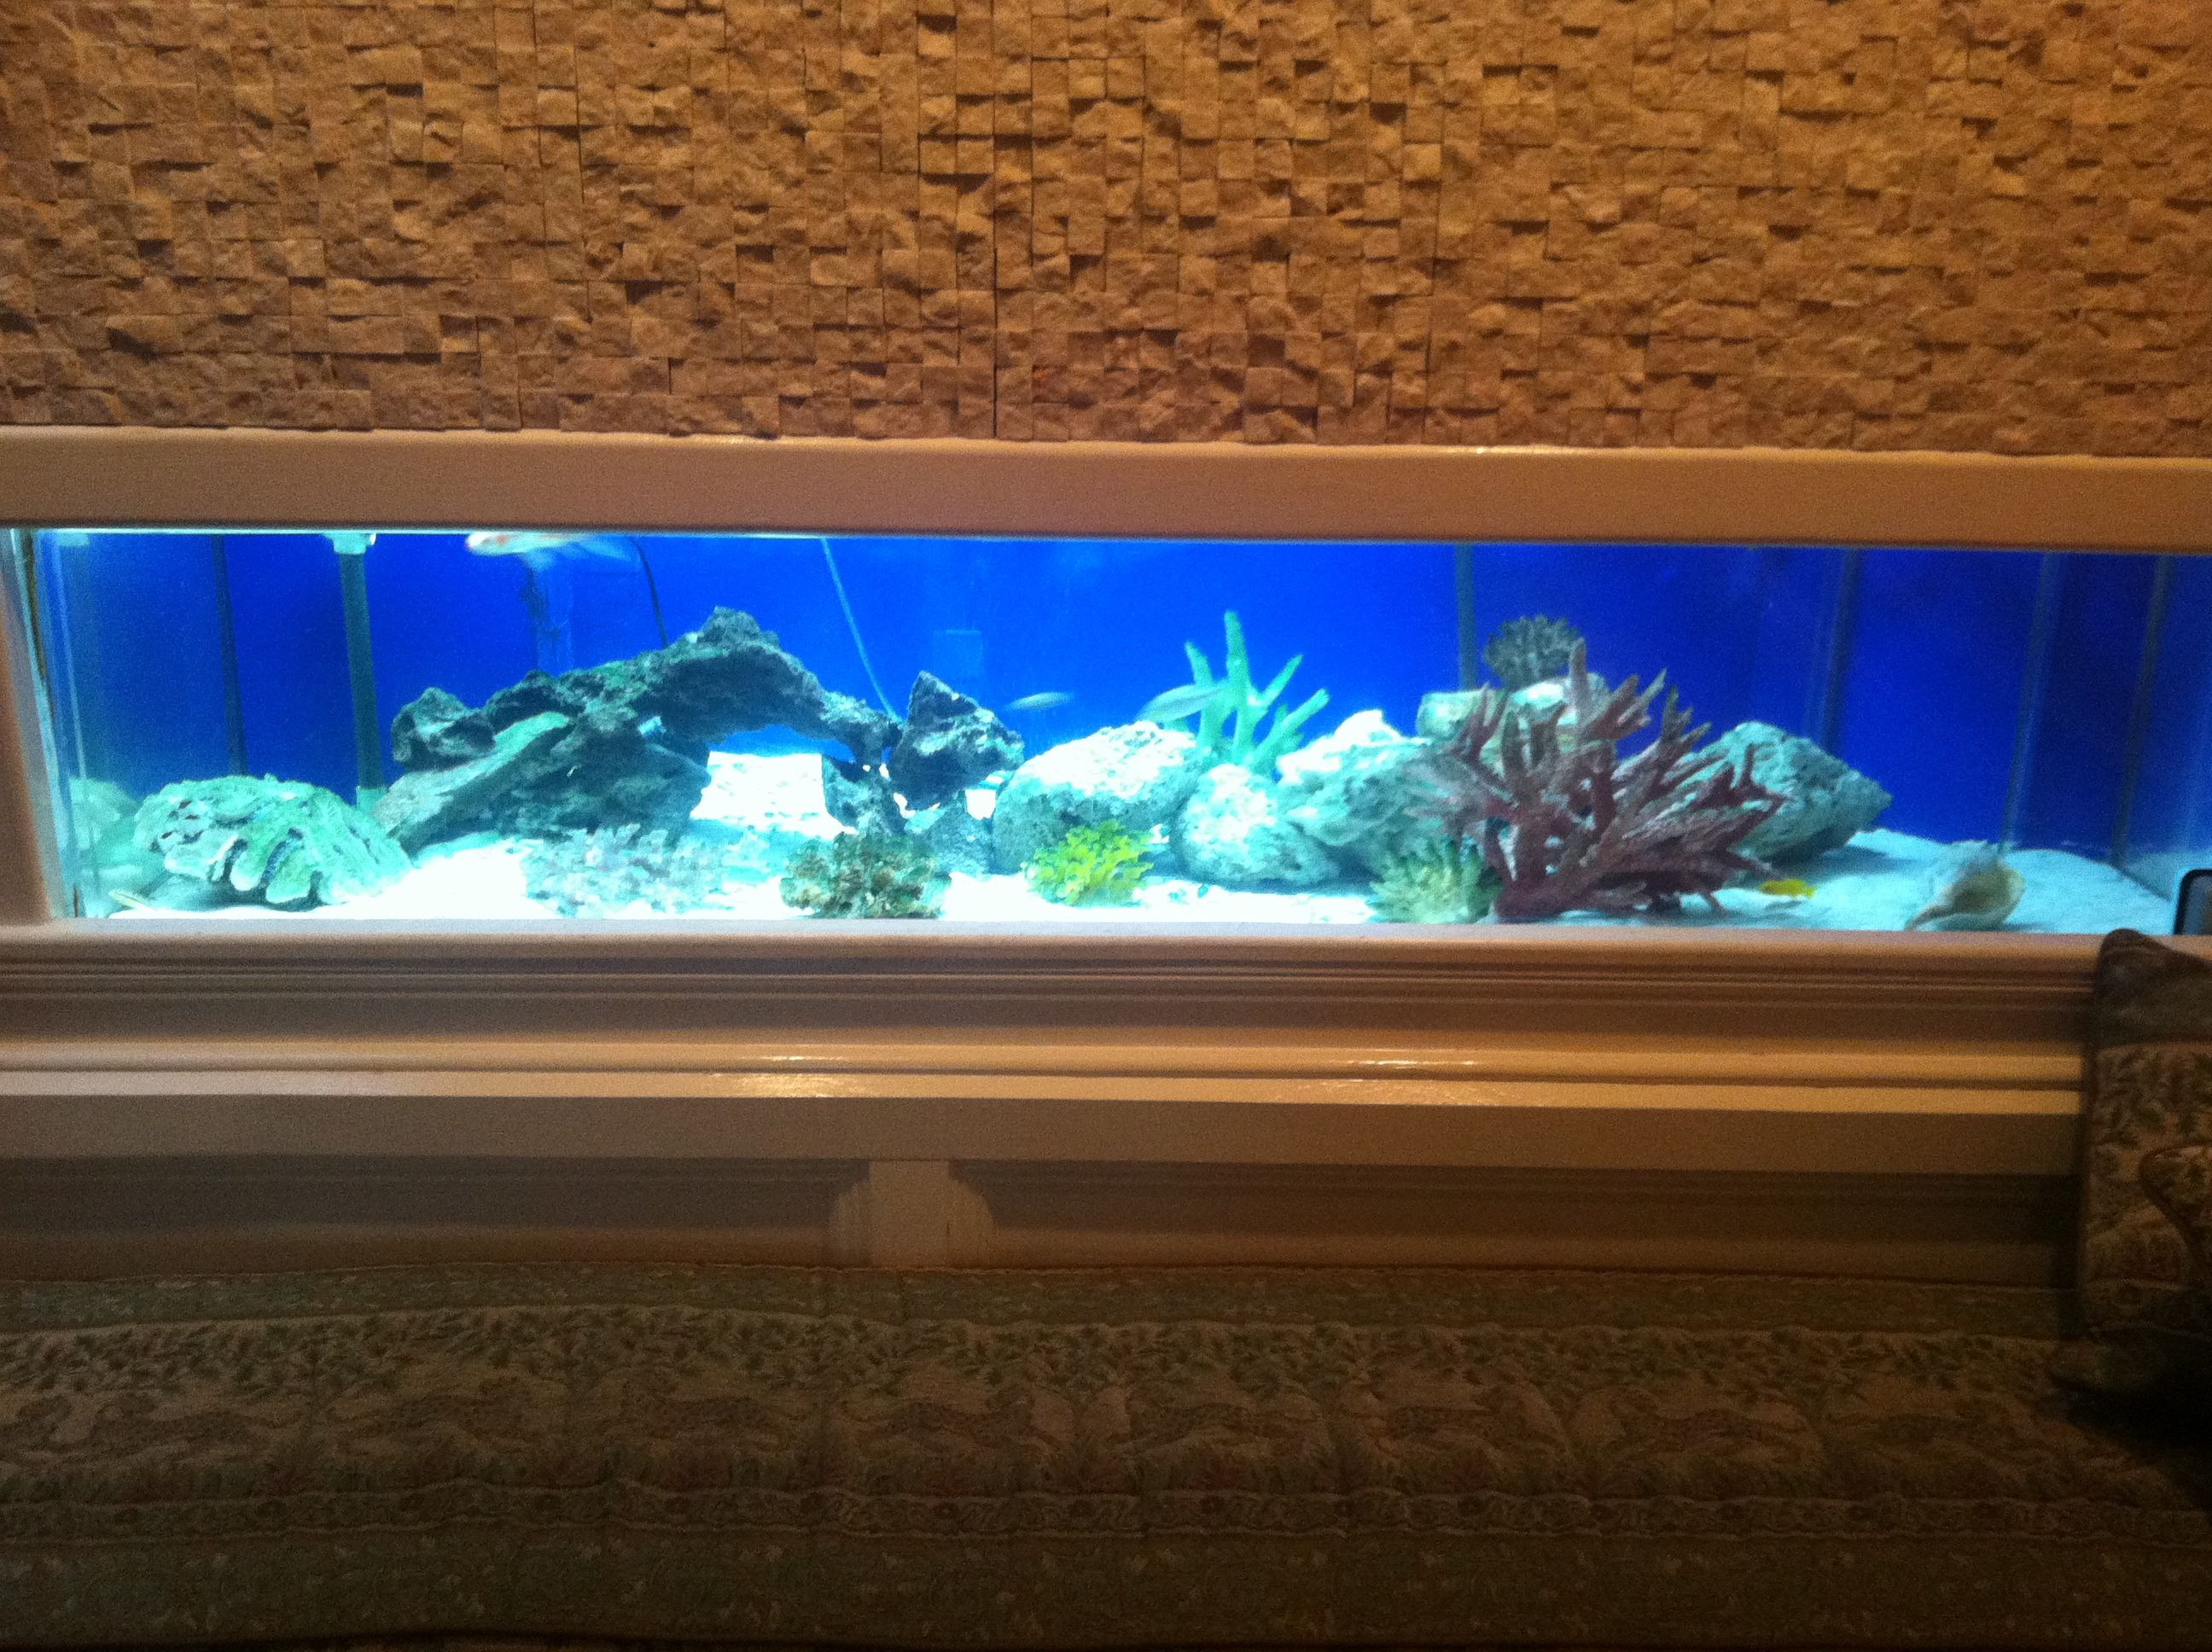 300 Gallon African Cichlids Freshwater Tank built into the wall of a